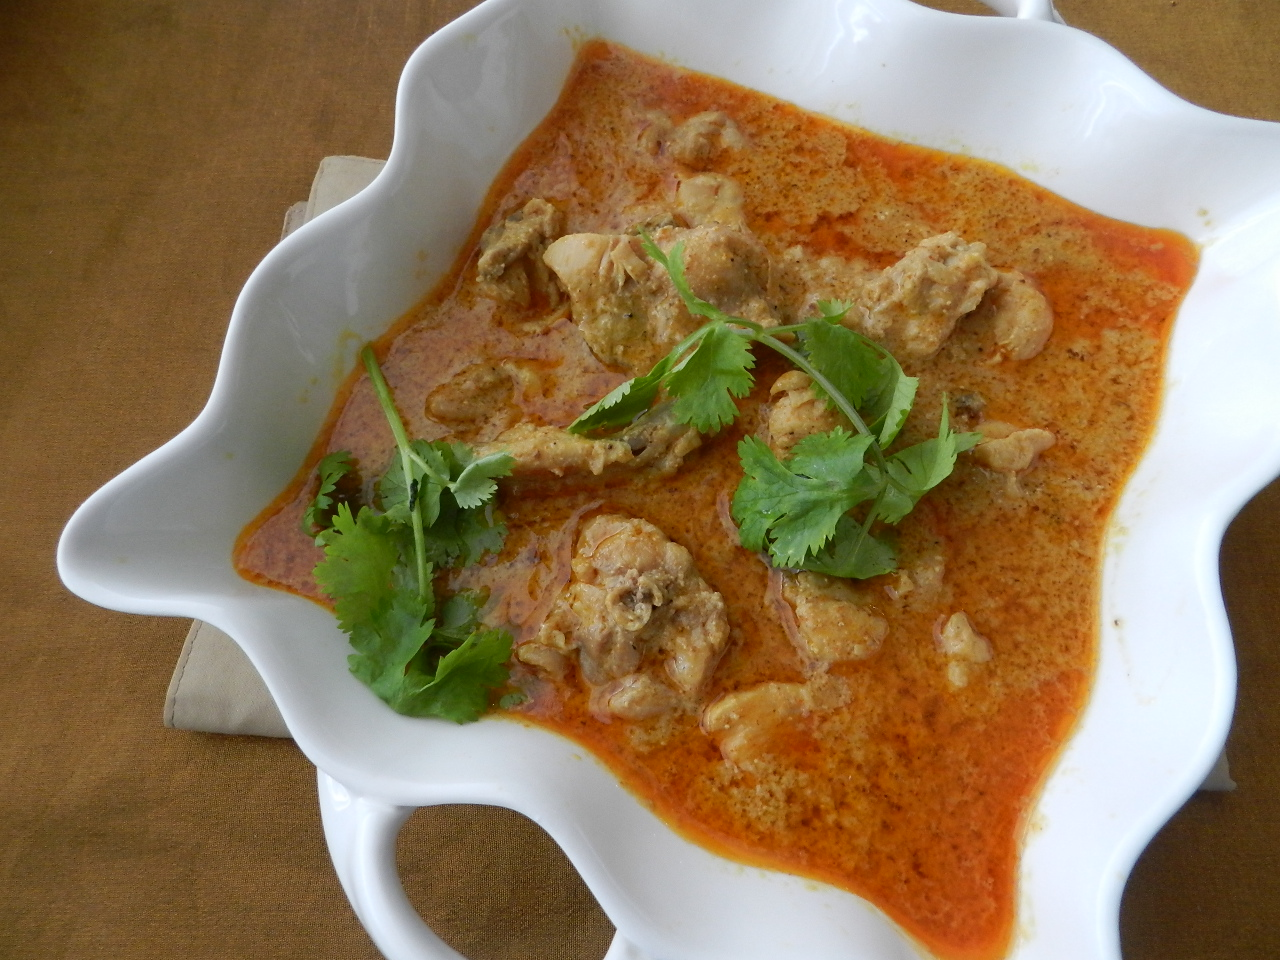 Raajis kitchen: Coconut milk Chicken curry